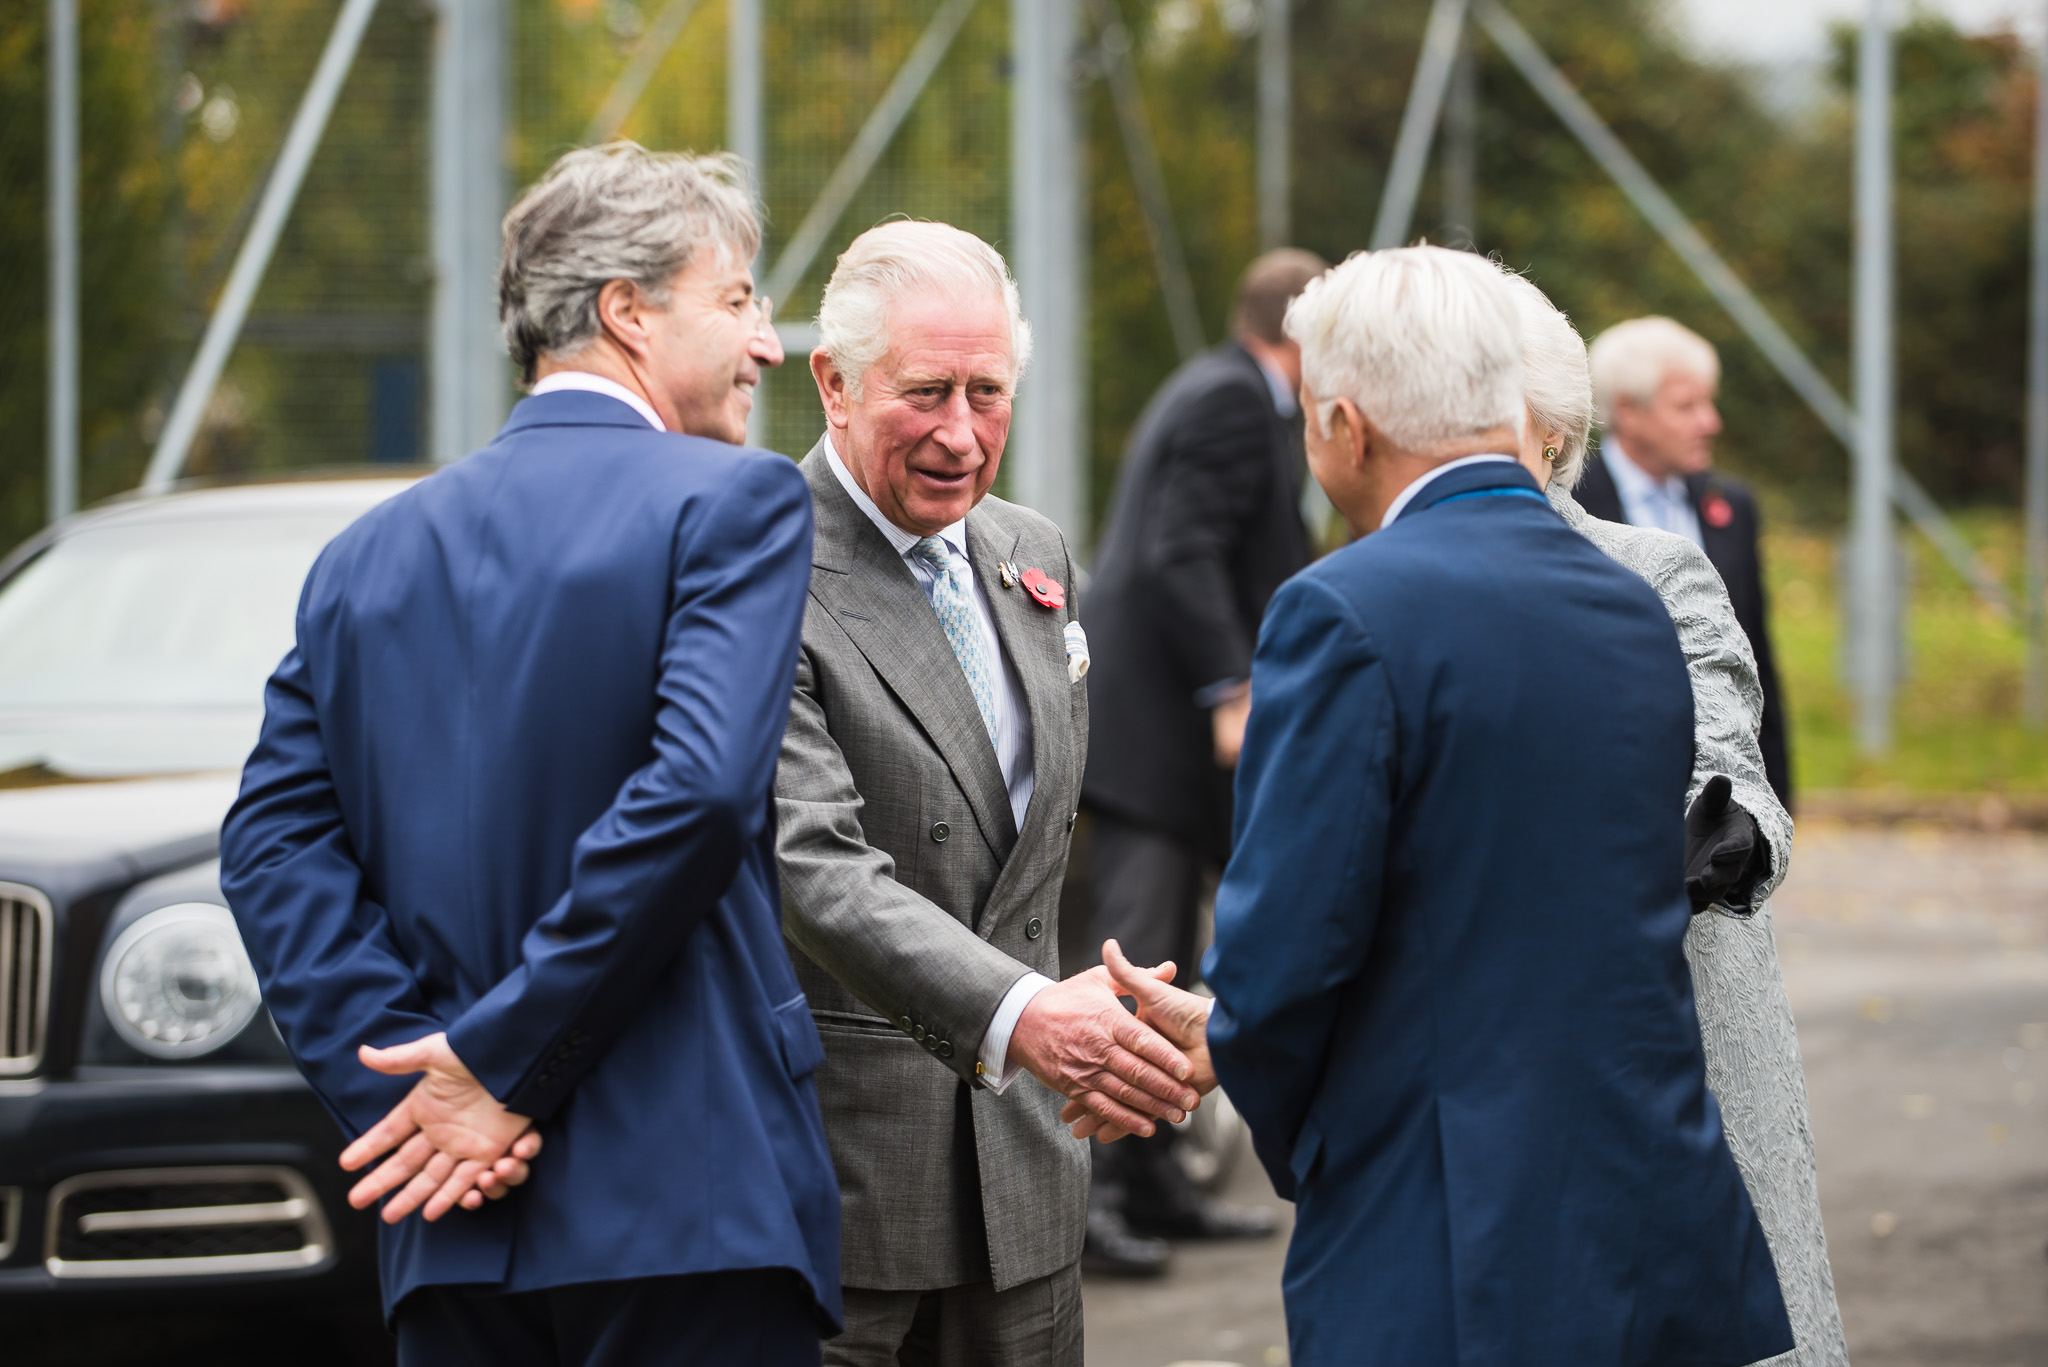 HRH Prince Charles with Mr Ian Hilditch, CEO and DR Esen Bayar, CTO